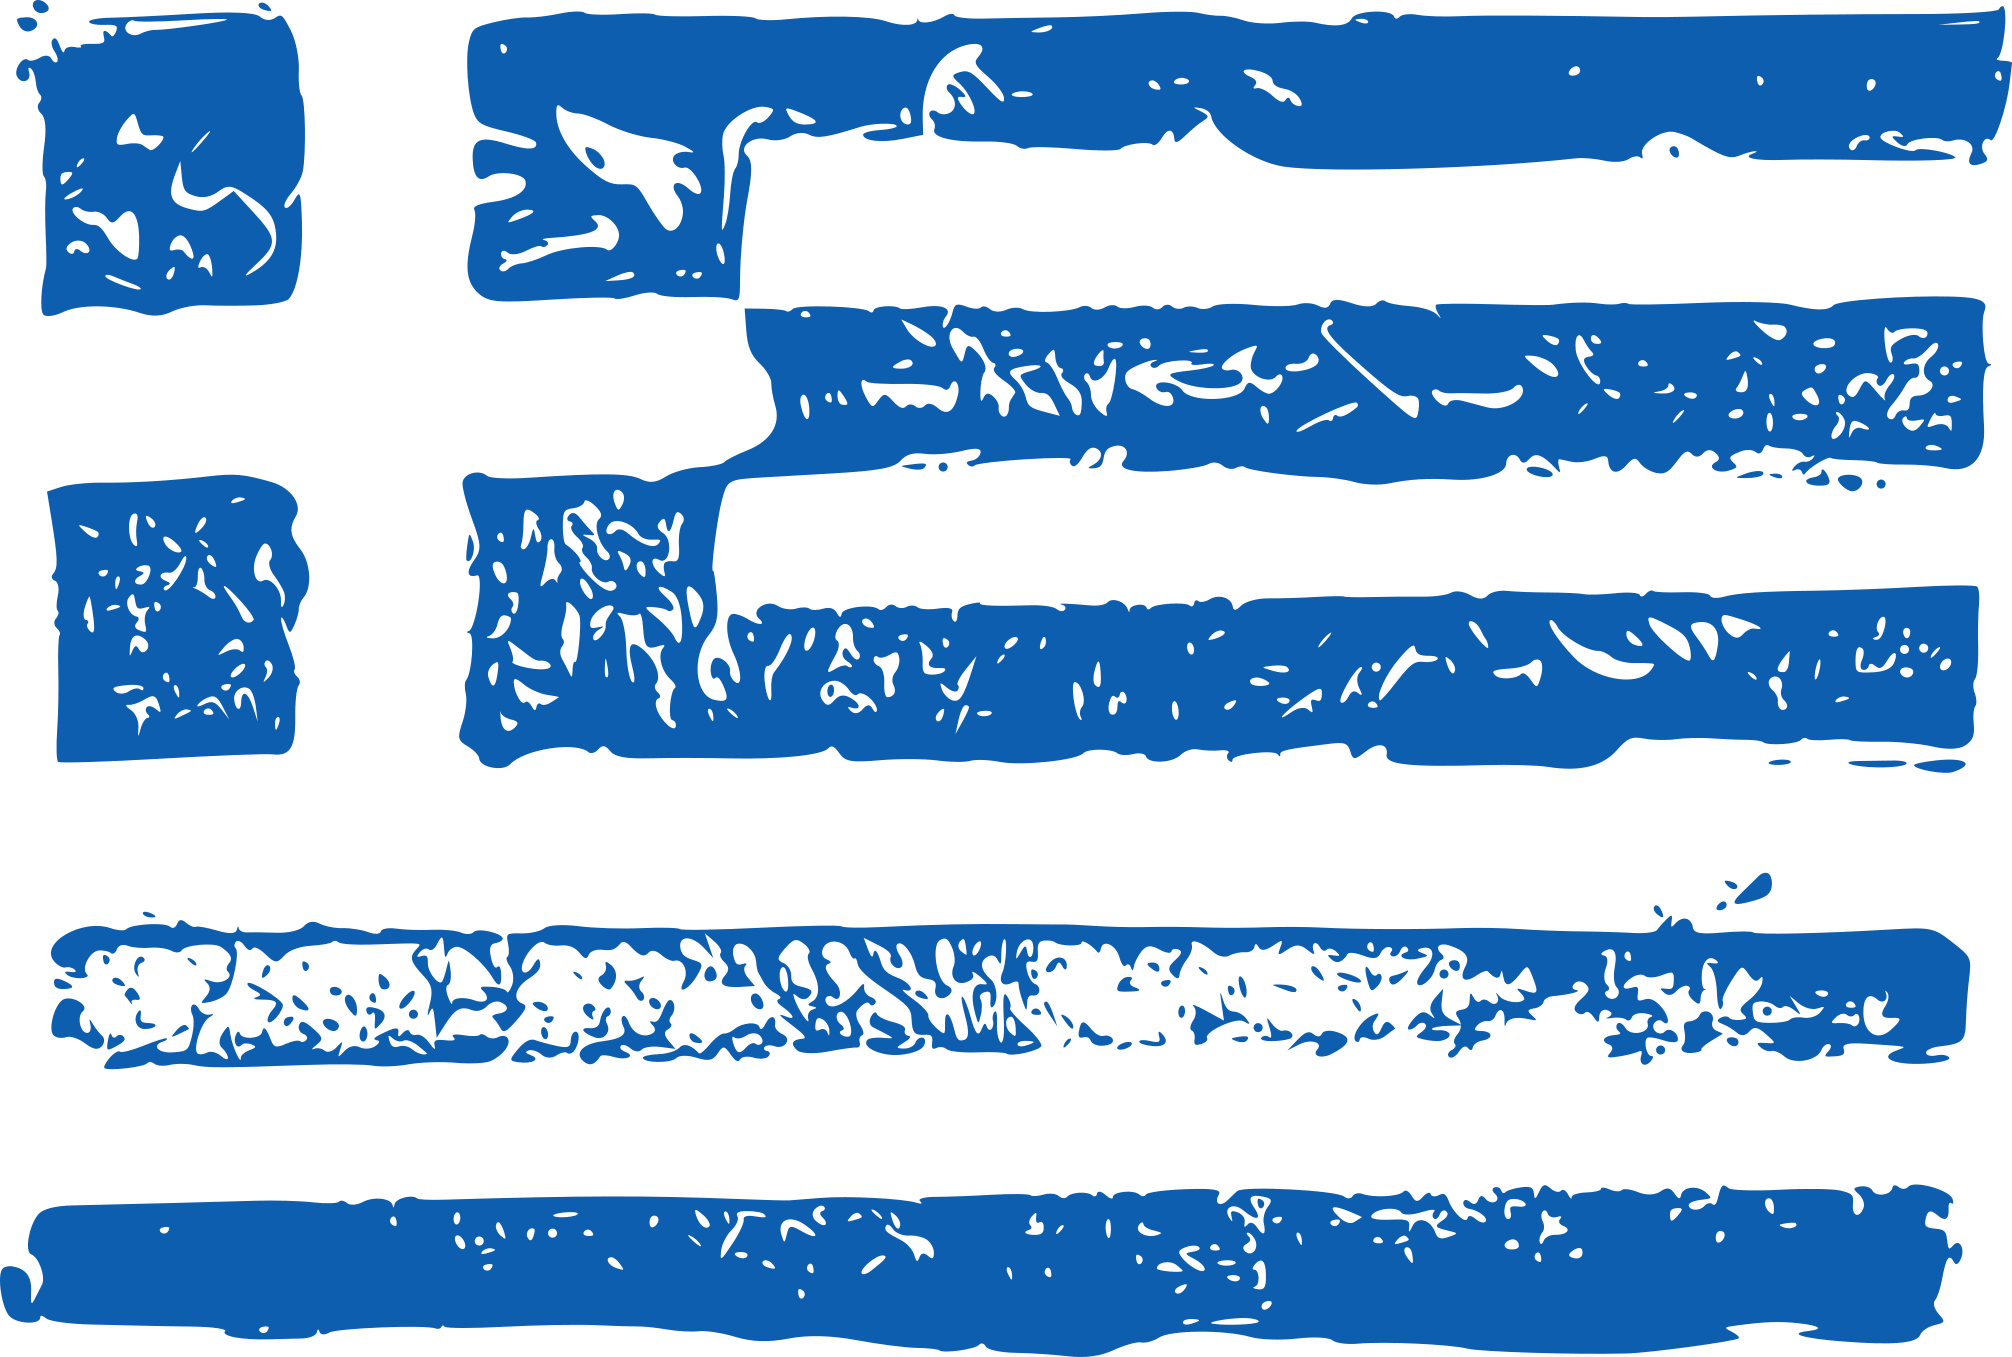 grunge-flag-of-greece-6.png